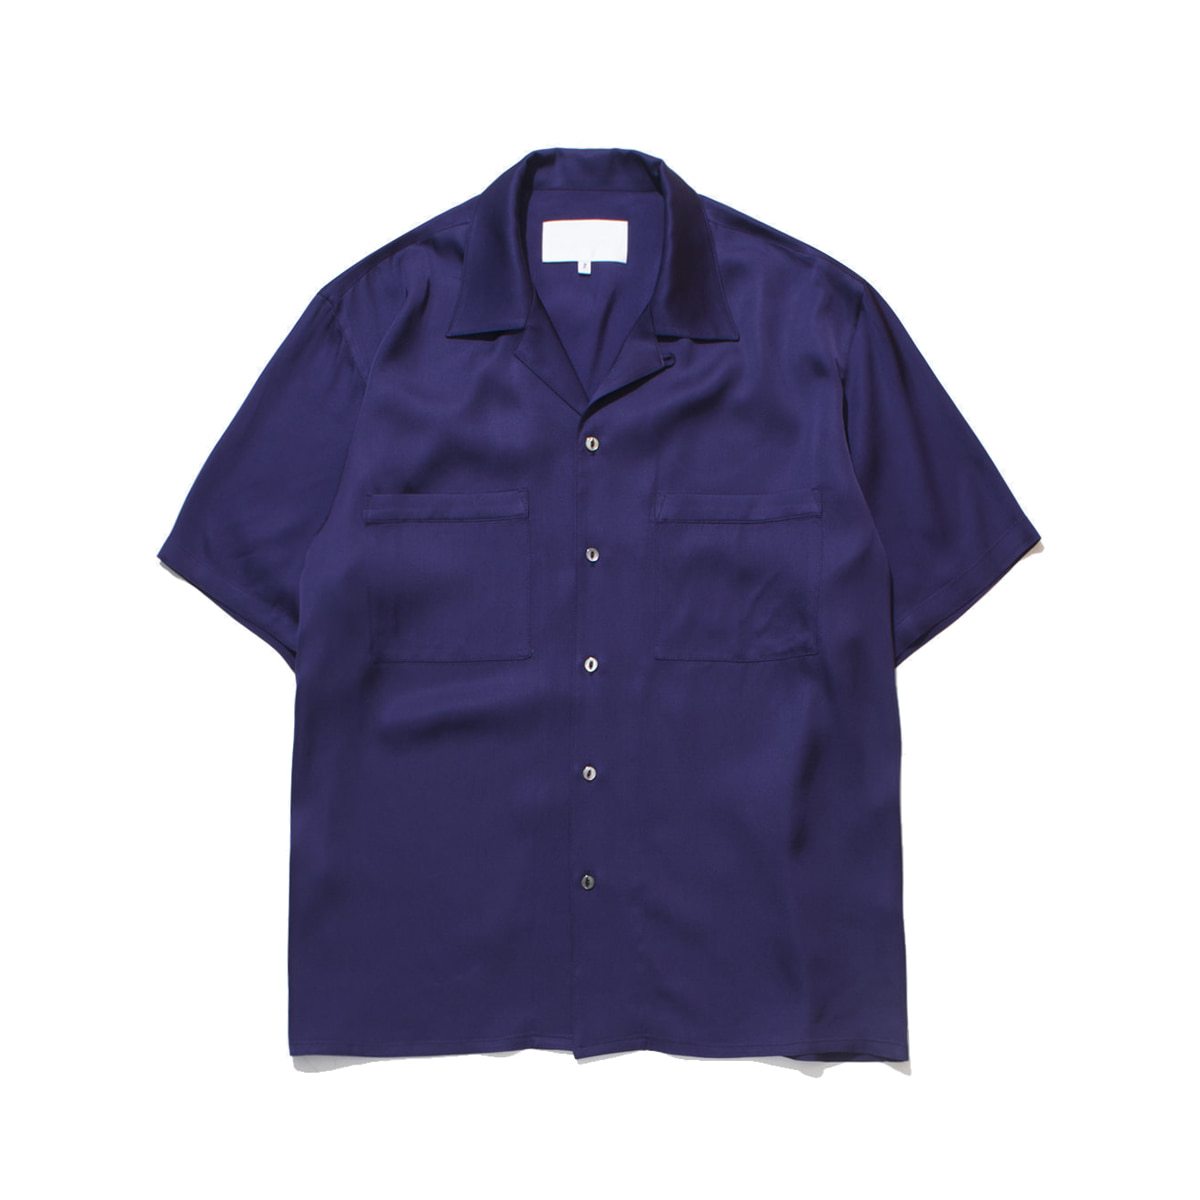 [GAKURO] OPEN COLLAR SHIRT - VISCOSE 'PURPLE'